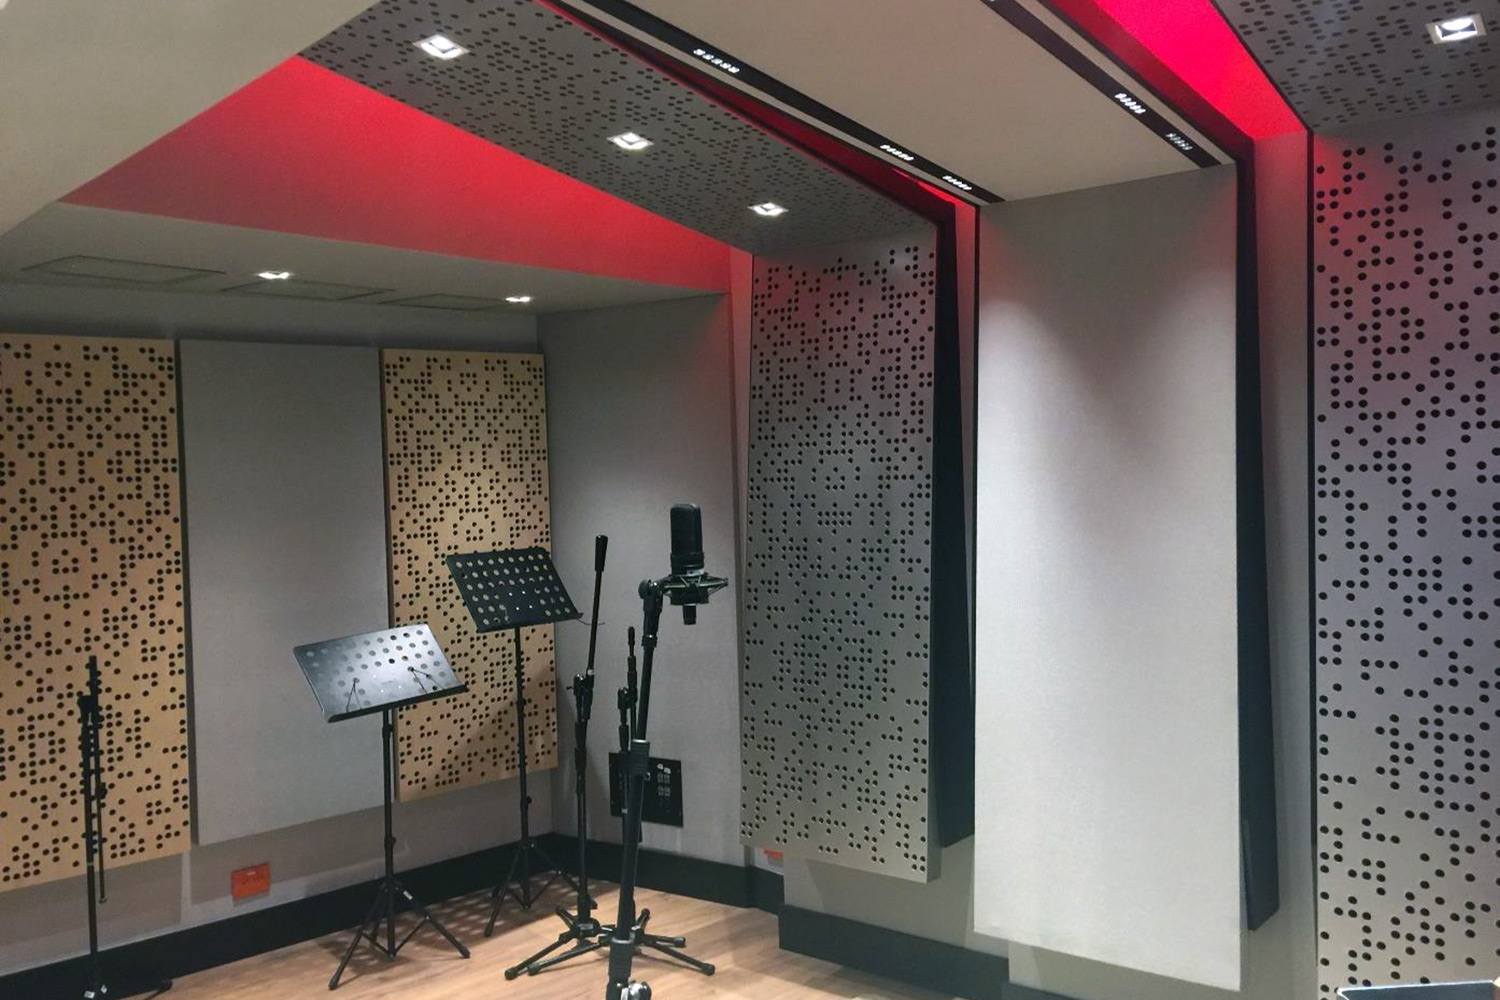 Universidad ICESI in Cali, Colombia commissioned WSDG to design their new music performance, composition and production building with world-class recording studios. Practice and Ensemble.